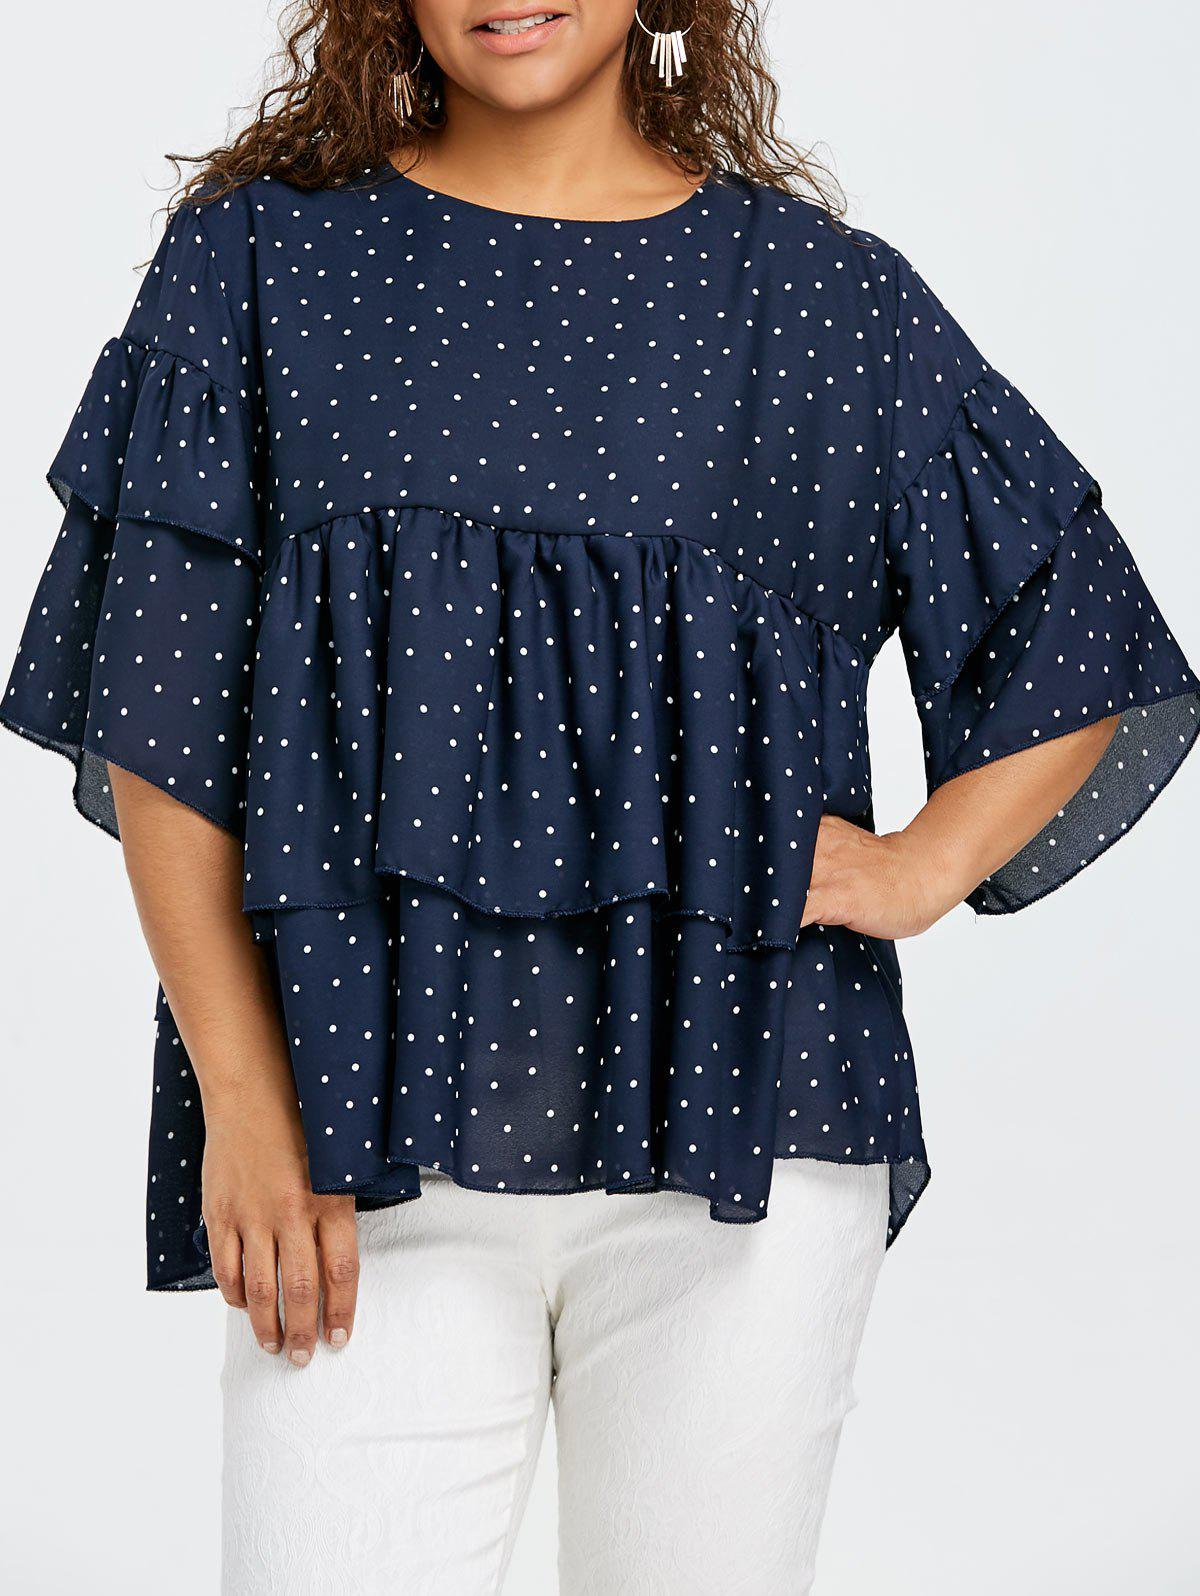 Polka Dot Tiered Plus Size Blouse - CADETBLUE 3XL